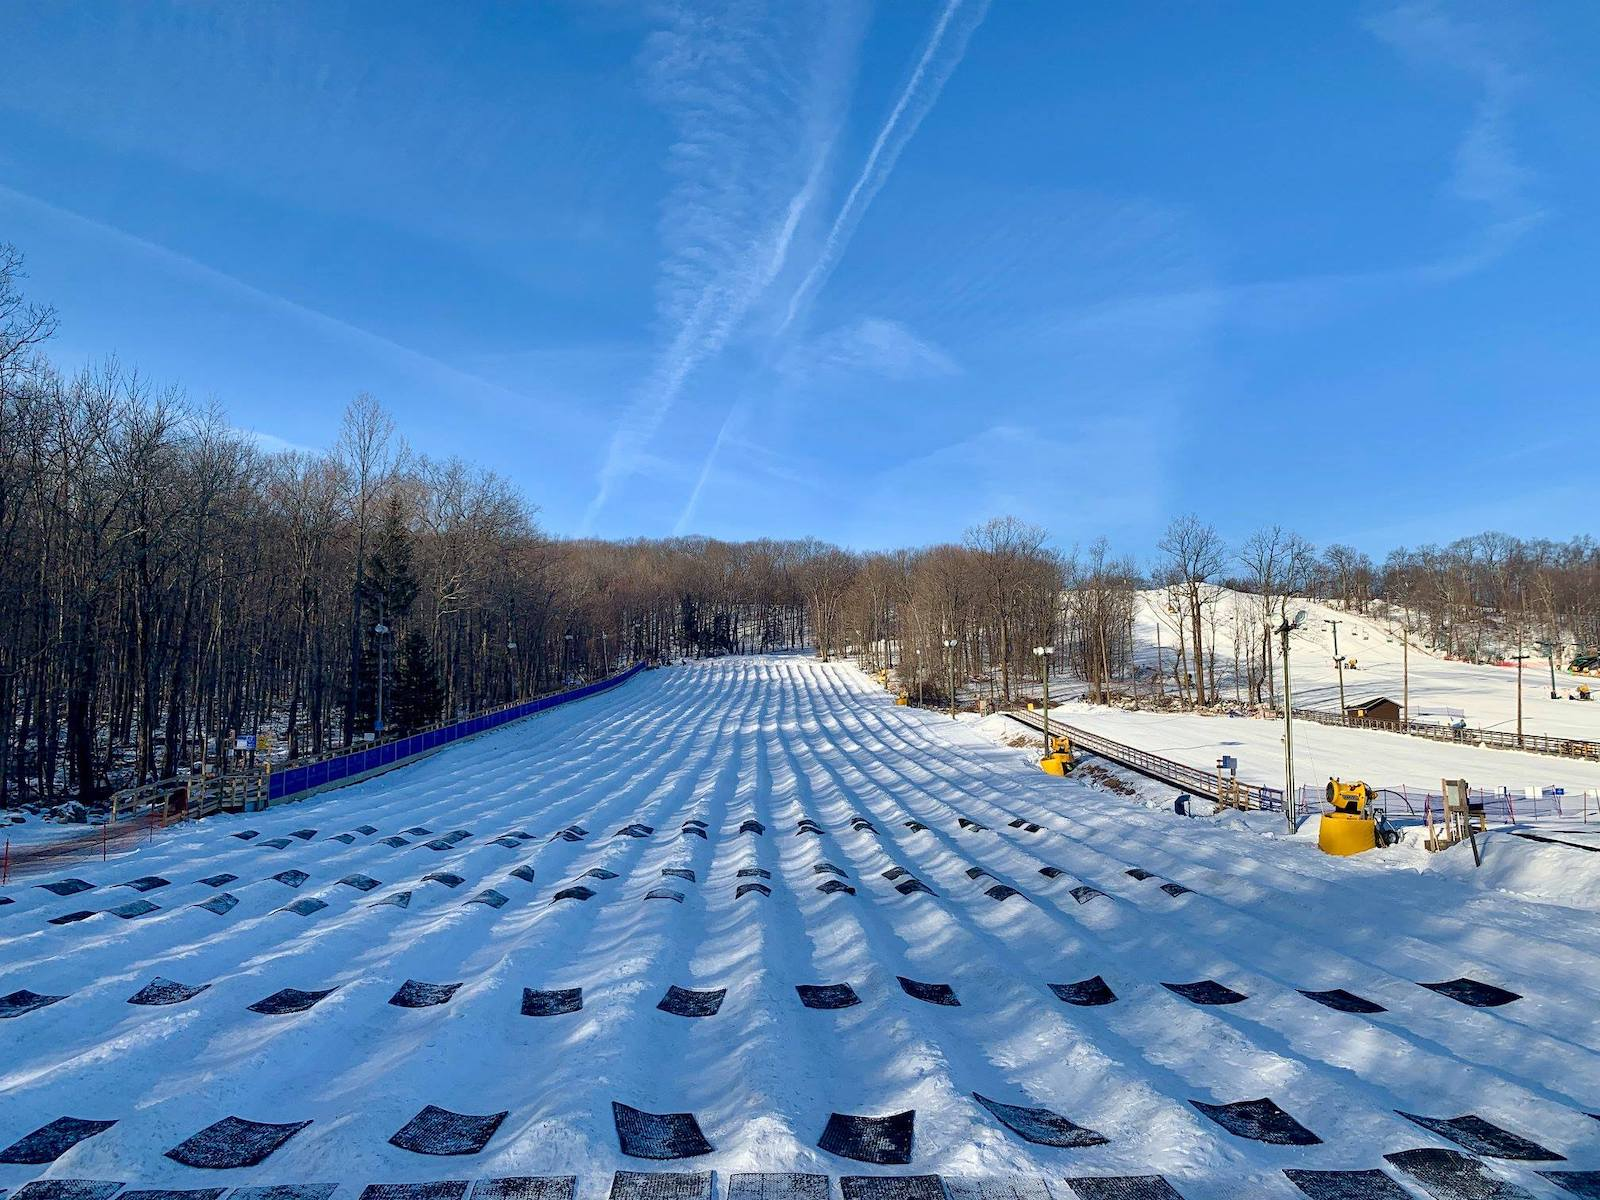 Image of snow tubing area at Campgaw Mountain in New Jersey